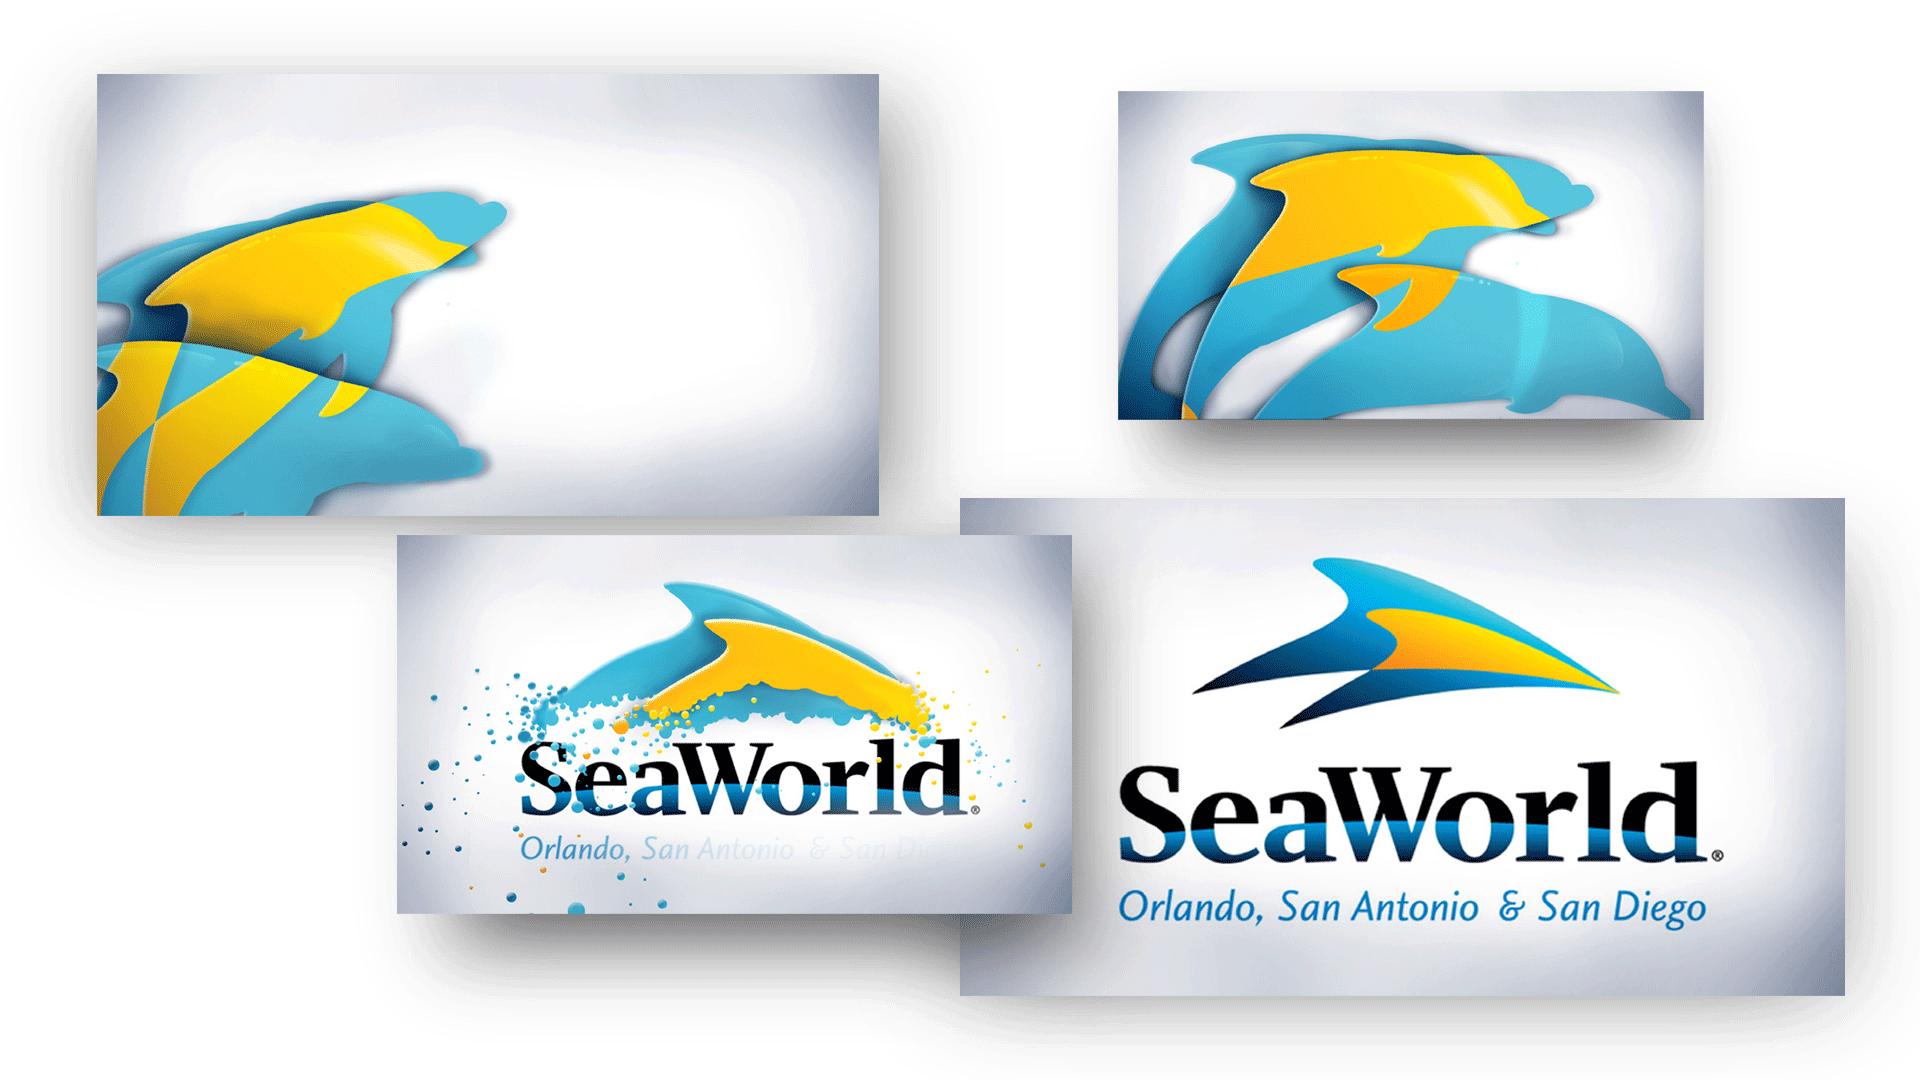 Seaworld Logo Animation